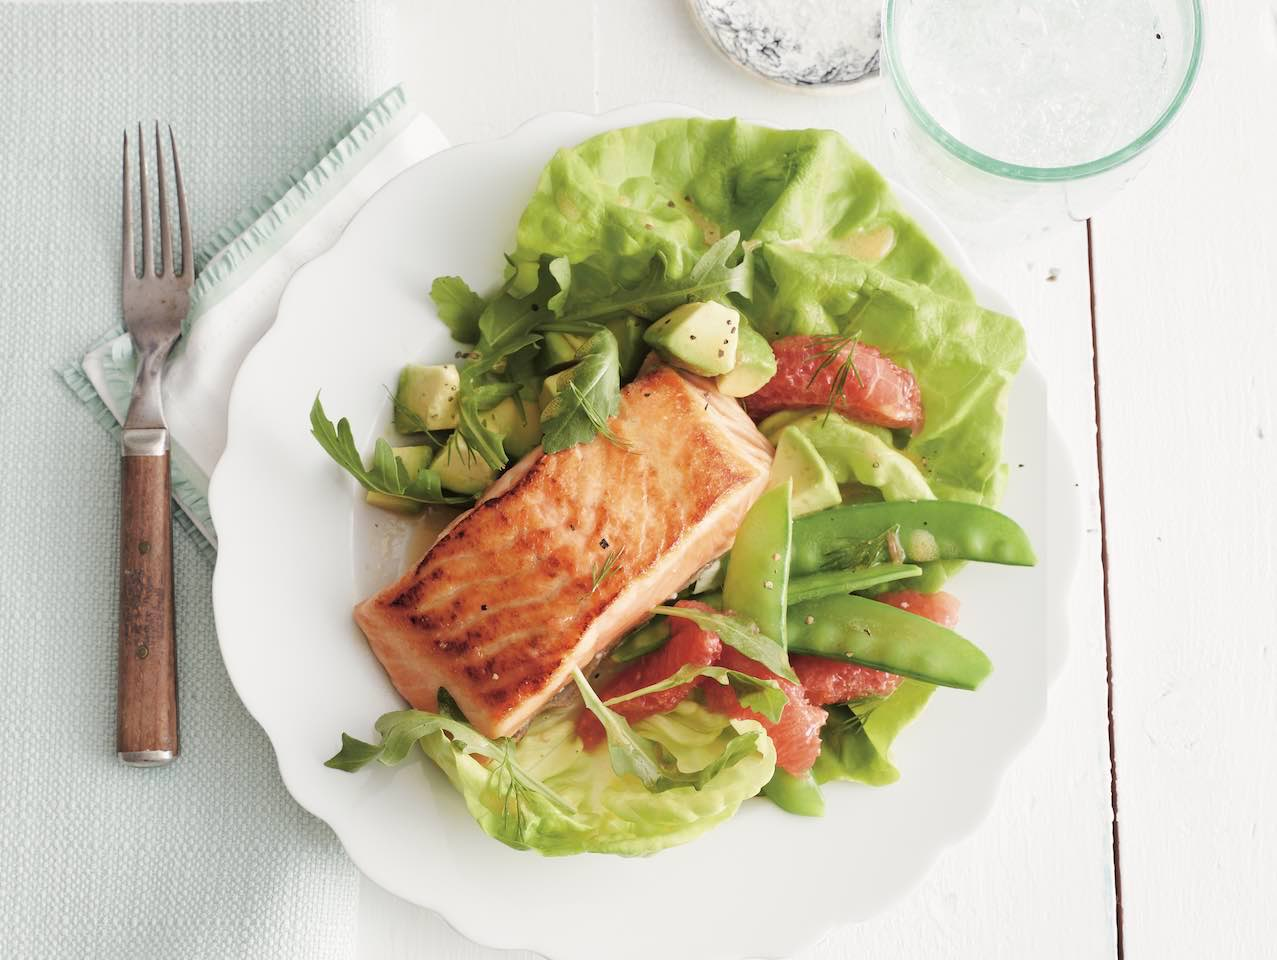 Seared salmon fillet with butter lettuce, snow pea, grapefruit and avocado salad on a plate.